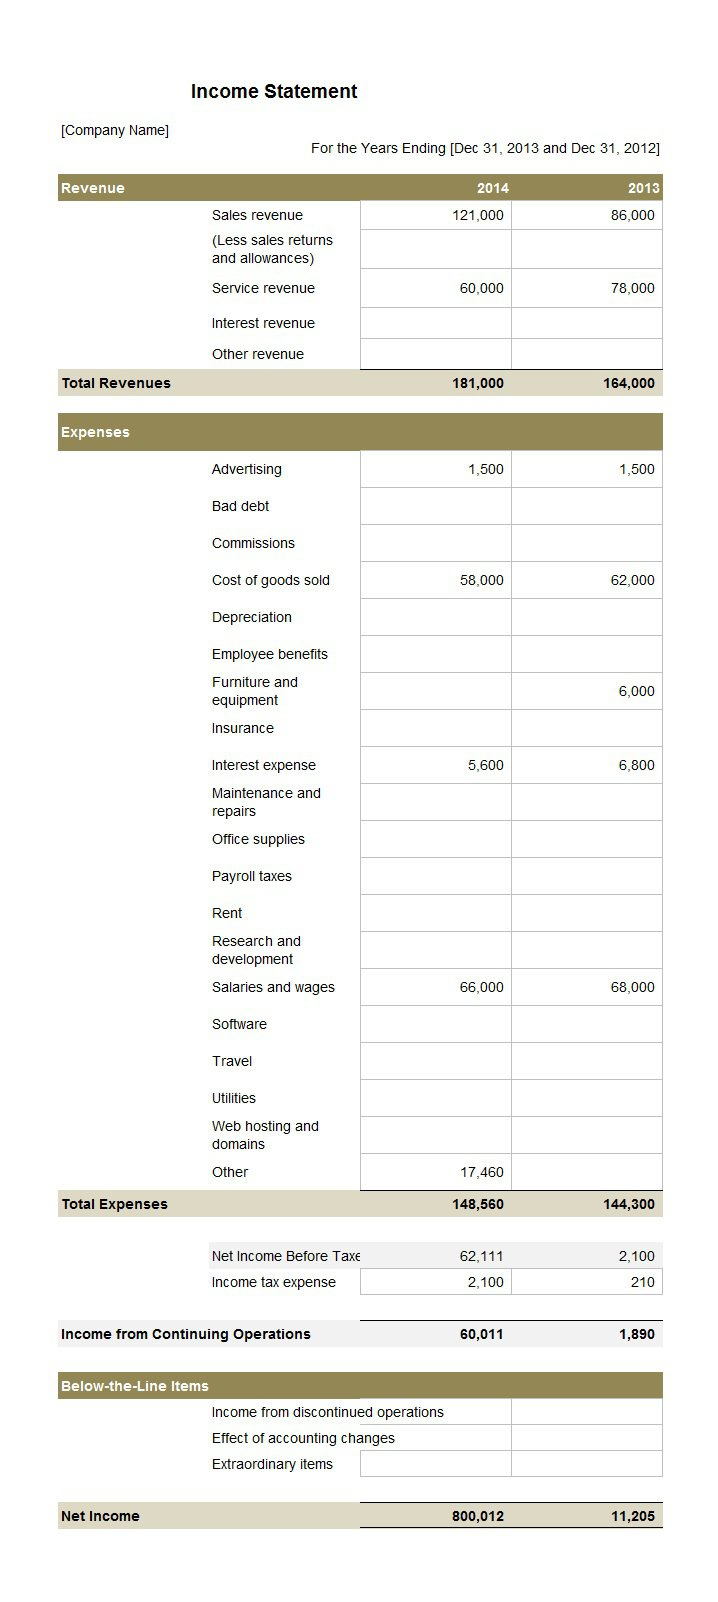 41 Free Income Statement Templates & Examples   Template Lab With Income Statement Template Free